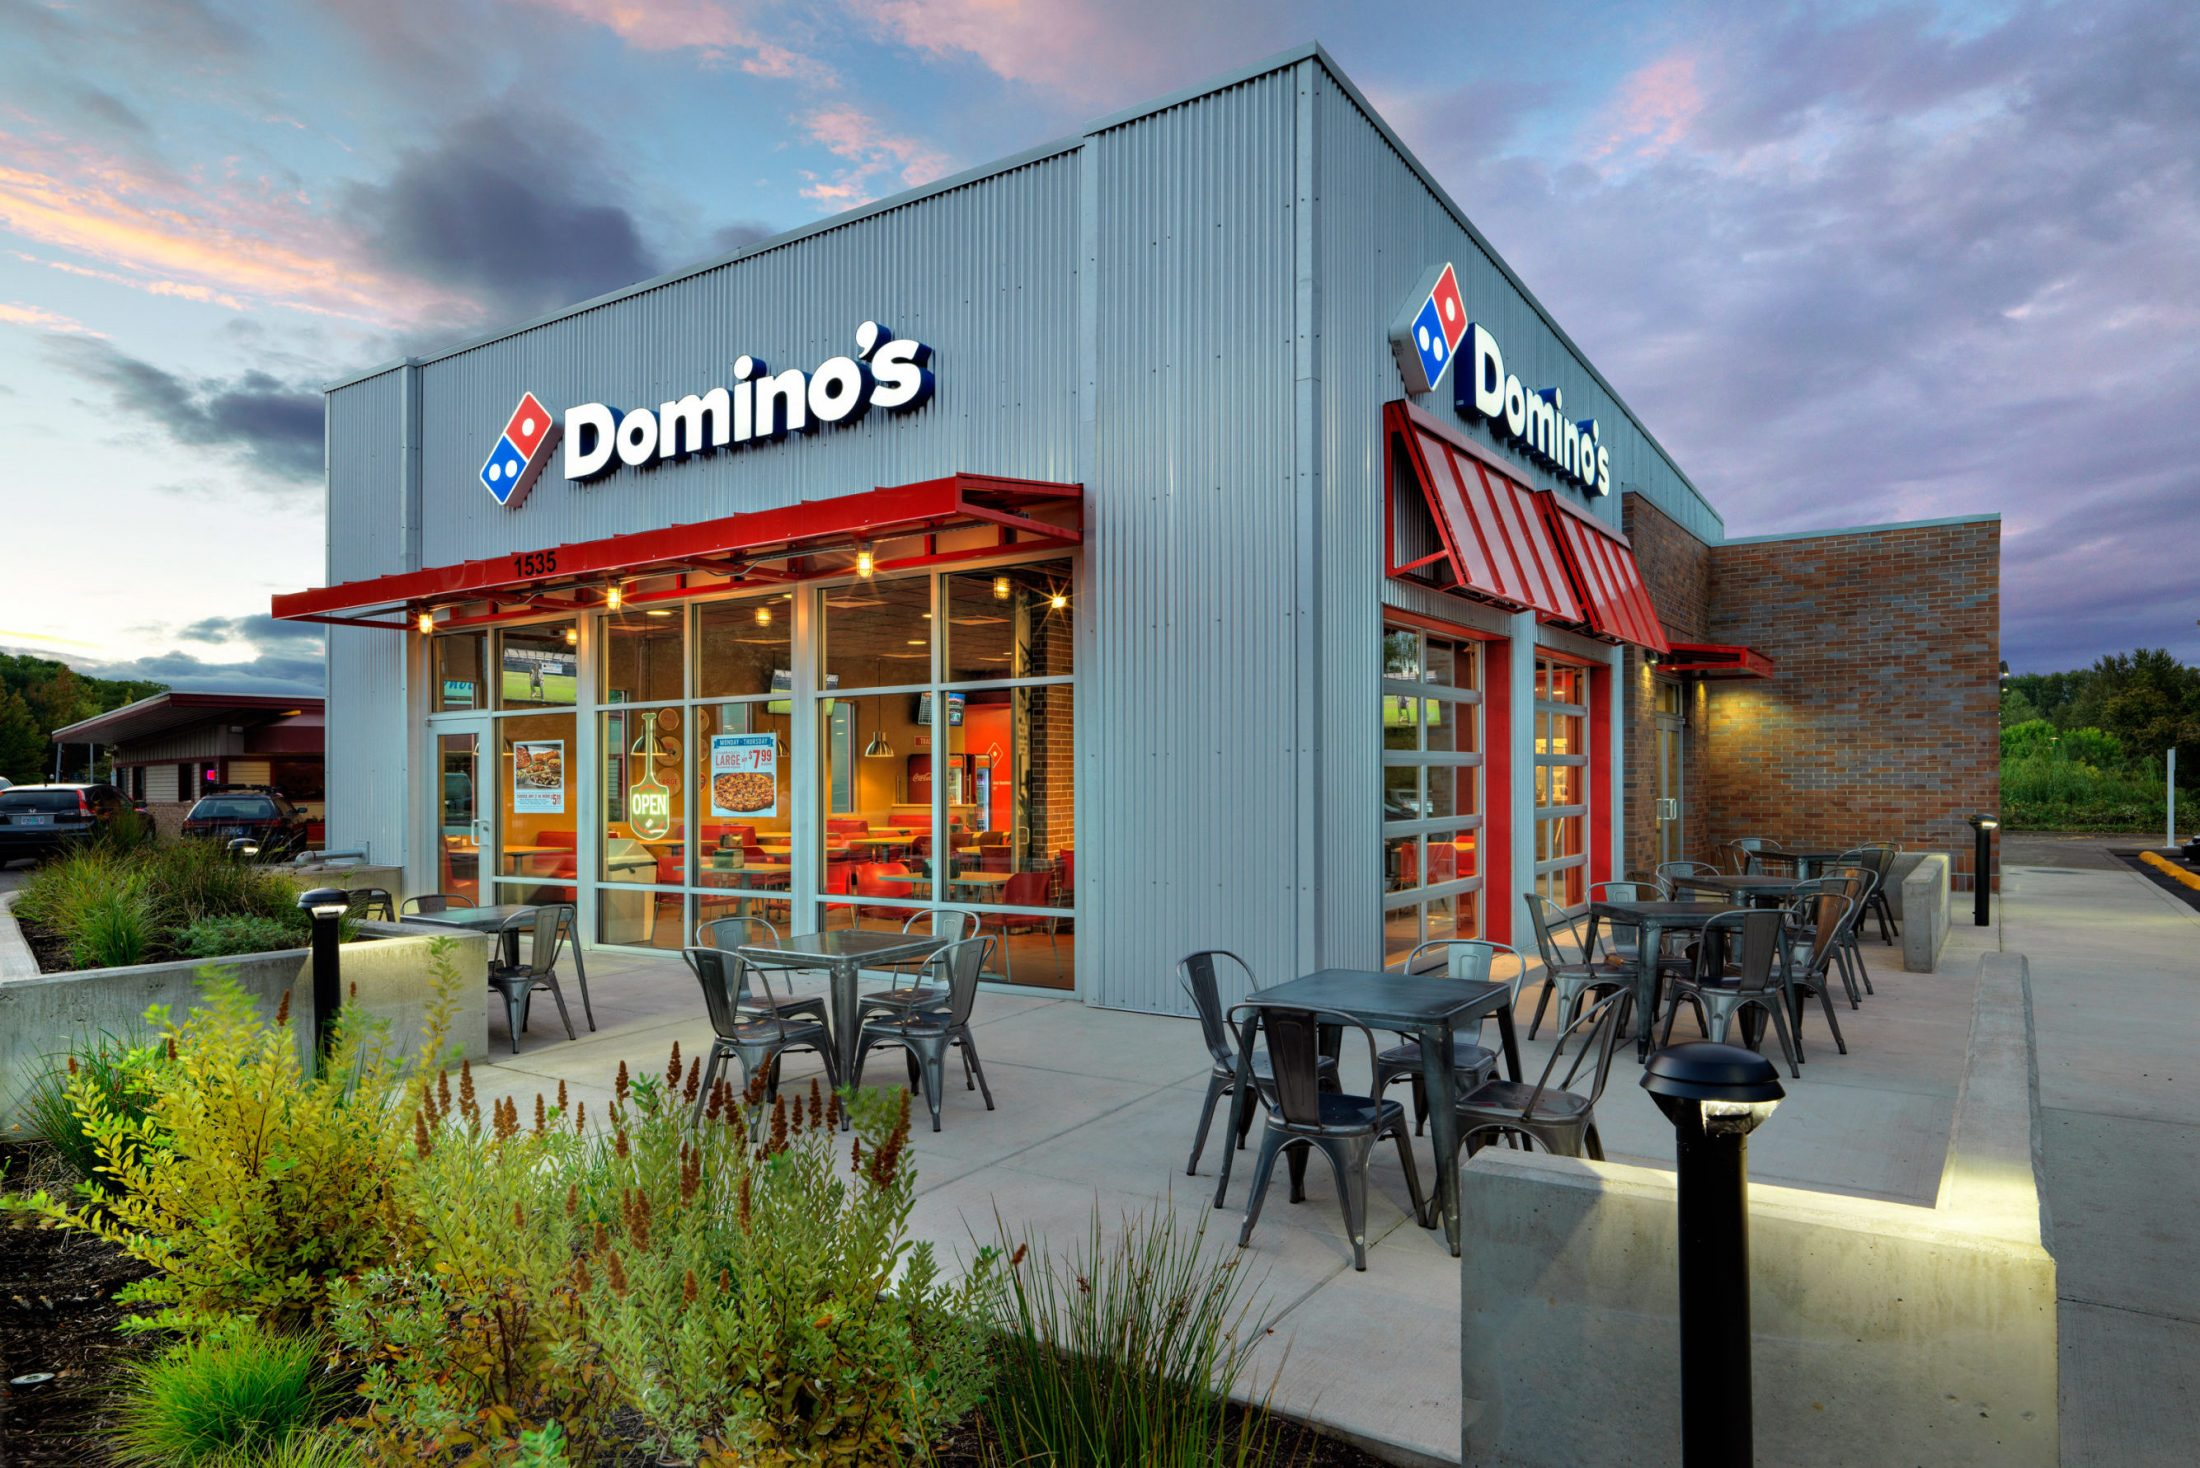 Domino's Pizza: The Dough Is Rising